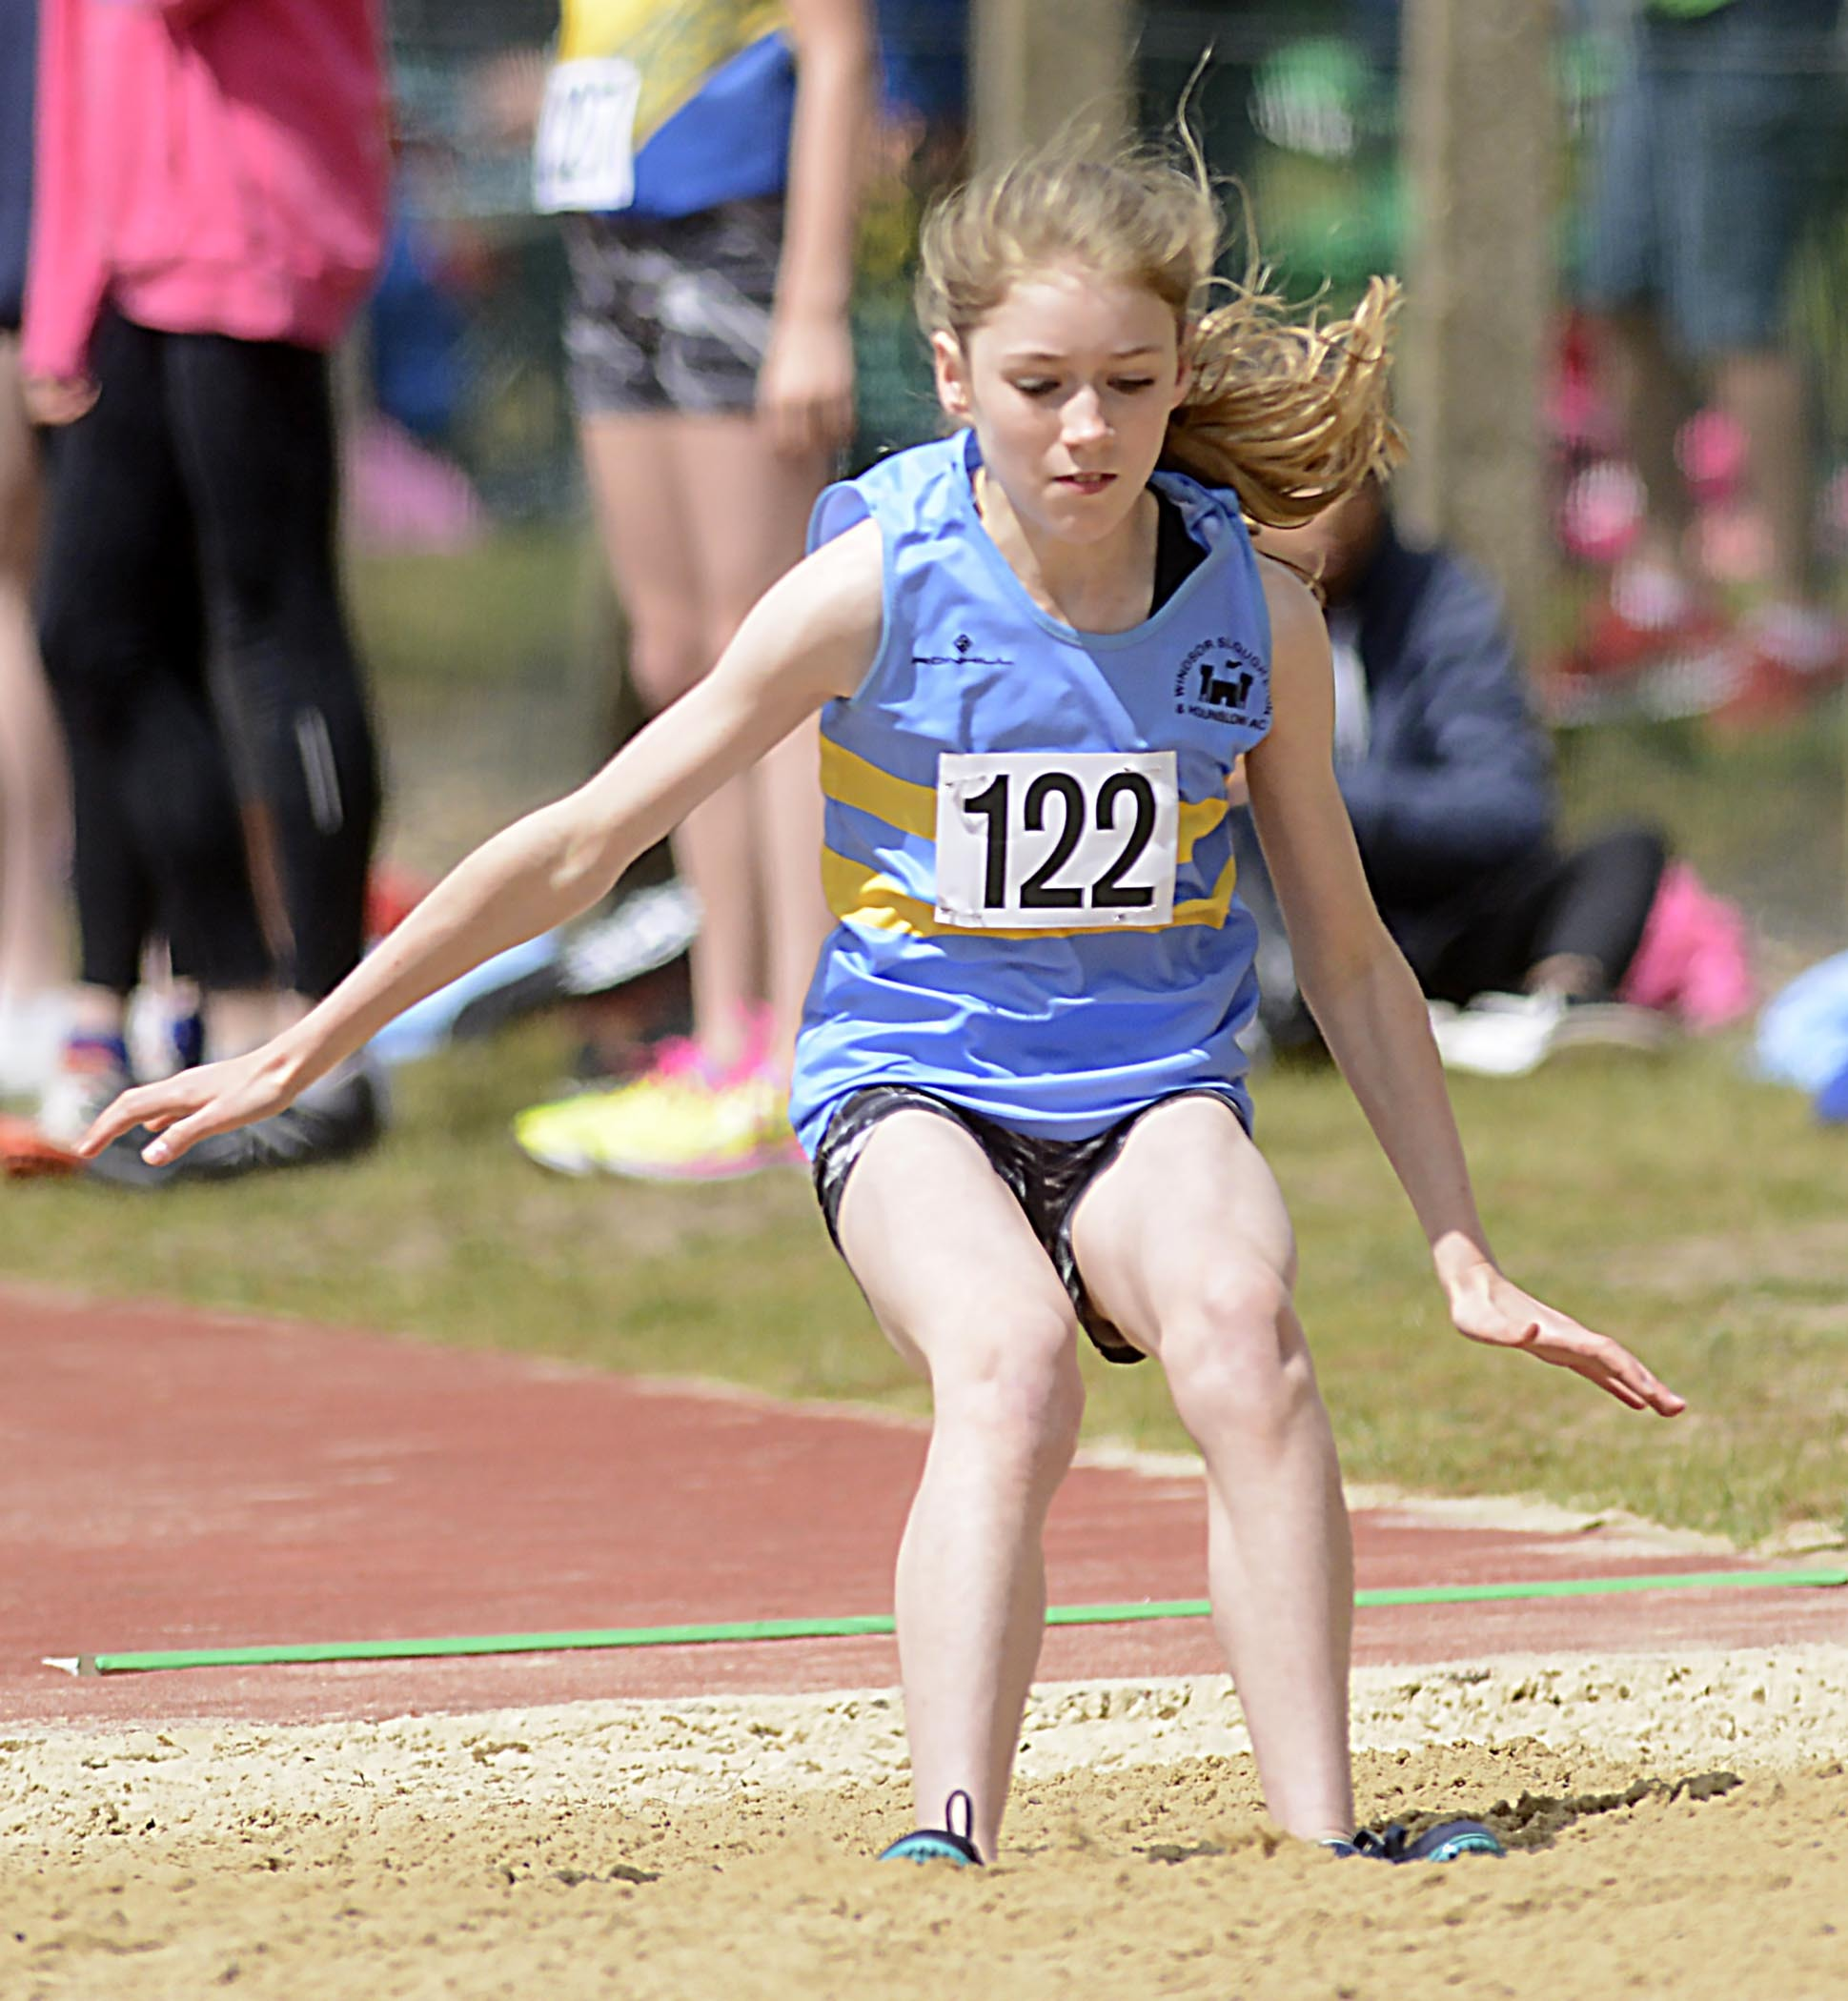 WSEH athlete Charlotte Dewar narrowly missed out on an individual medal when finishing in fourth position in the Under-15 girls event at the South of England Cross Country Championships.